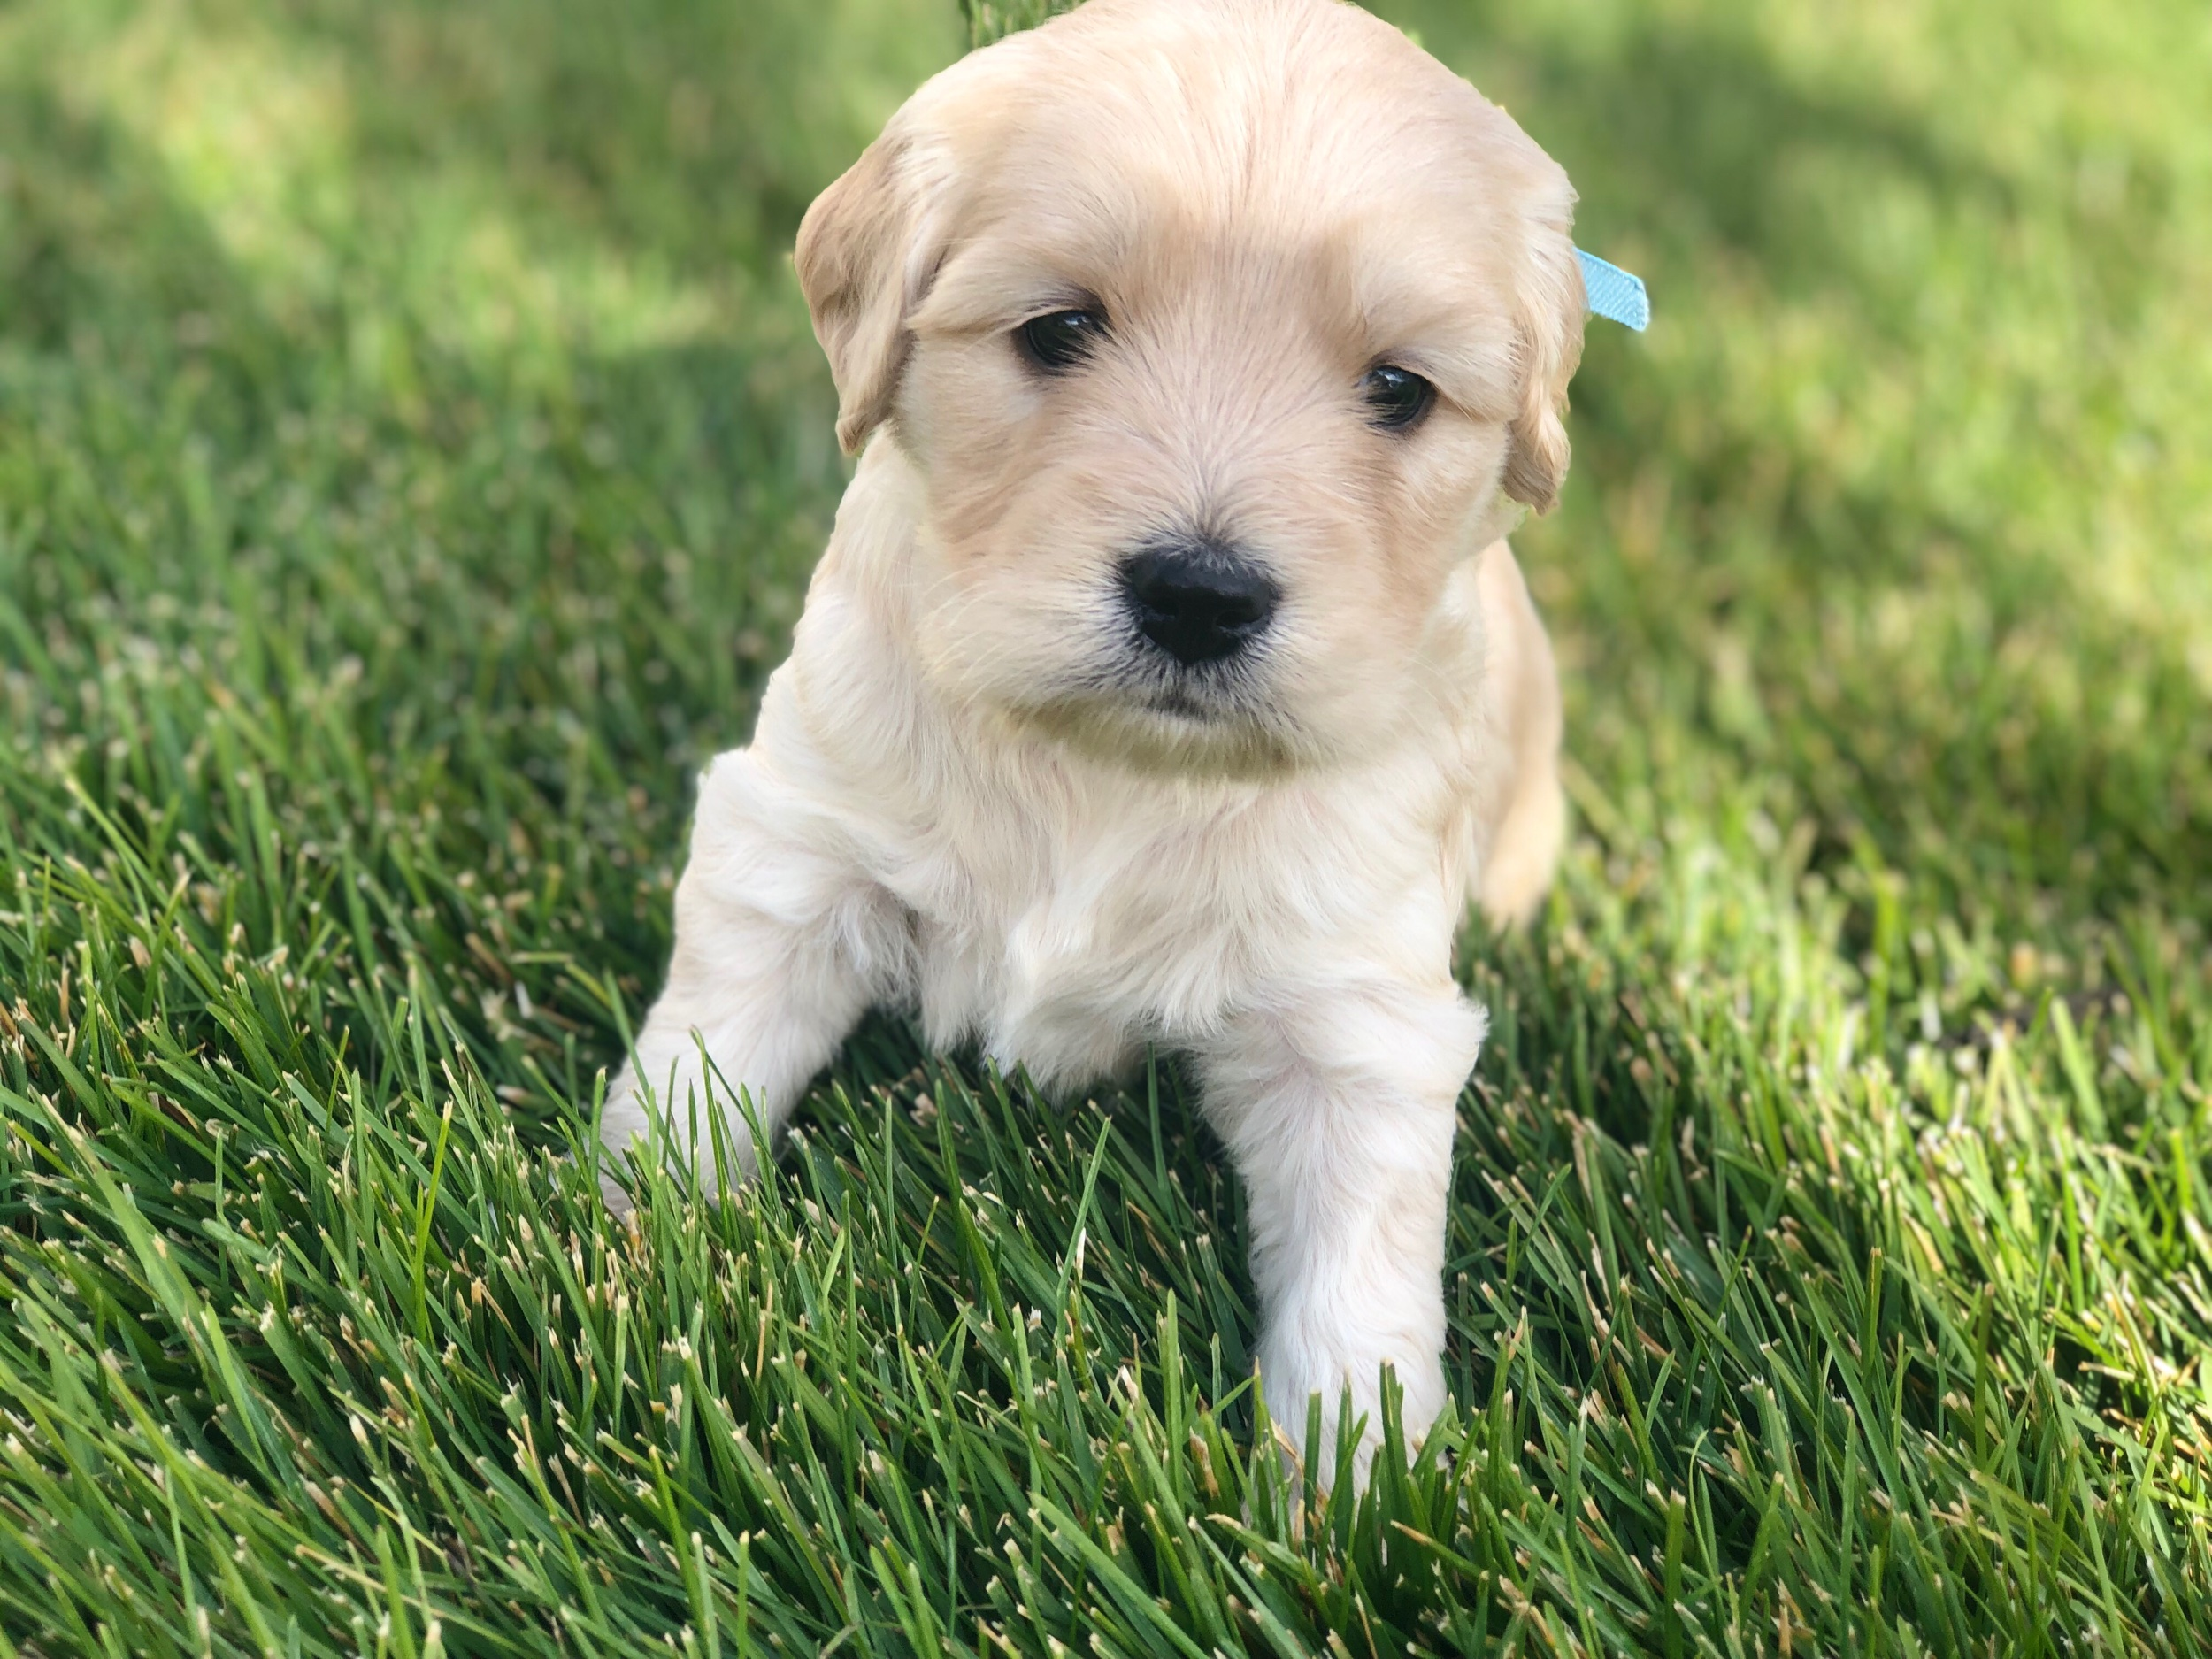 This is Lauren a light gold sister with a baby blue bow. She has a straight coat that looks like it will be non-shedding. She weighs 3 lbs 13 oz.